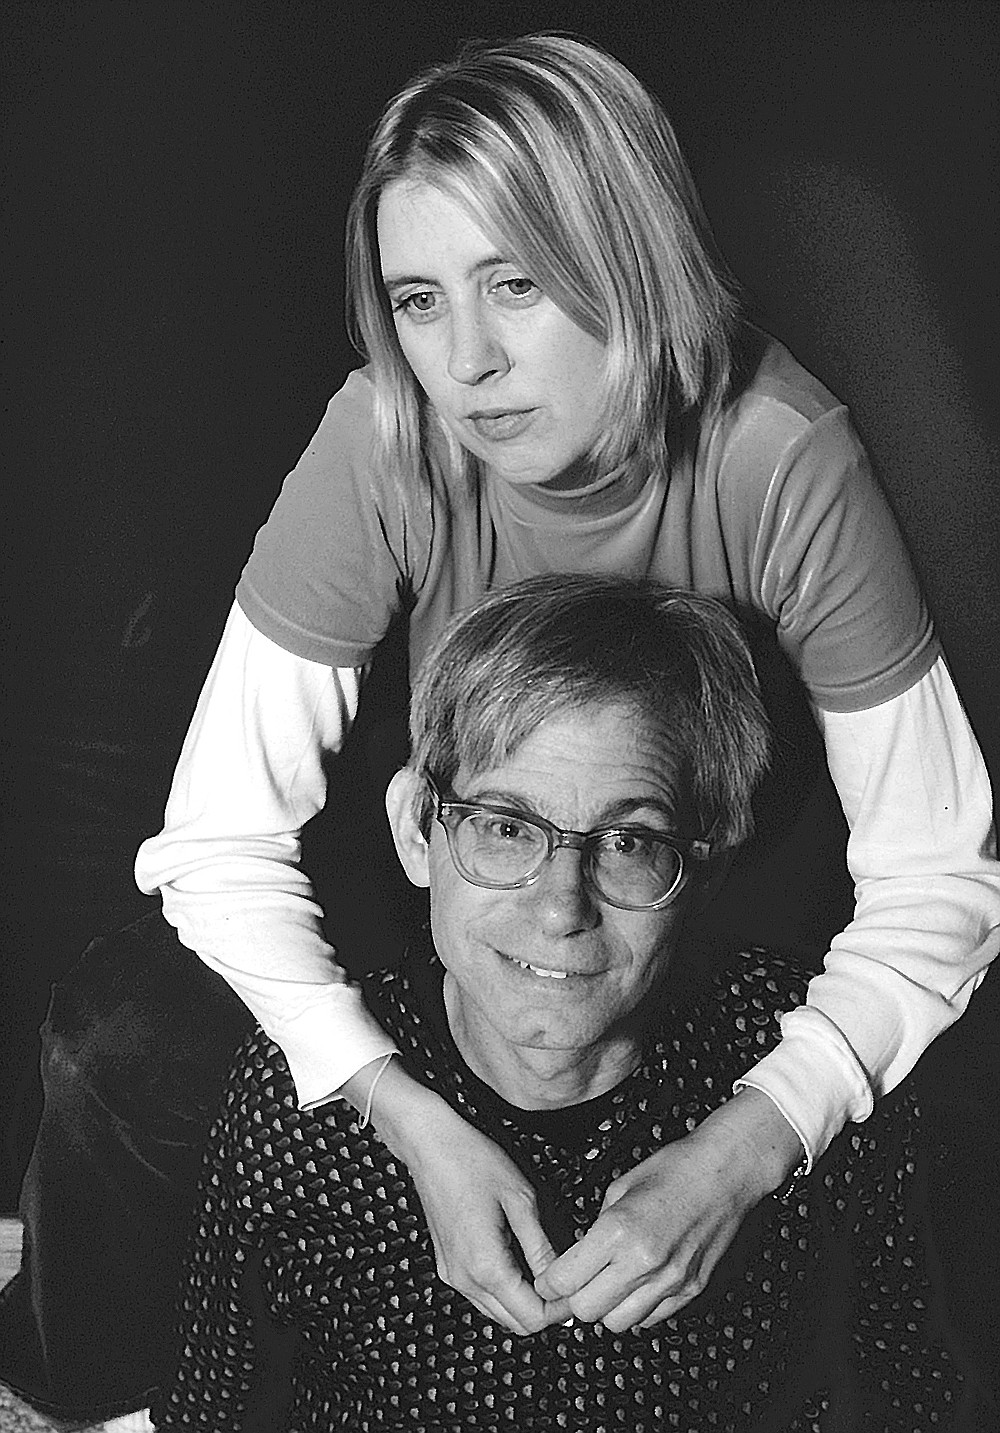 Paul Williams and Cindy Lee Berryhill